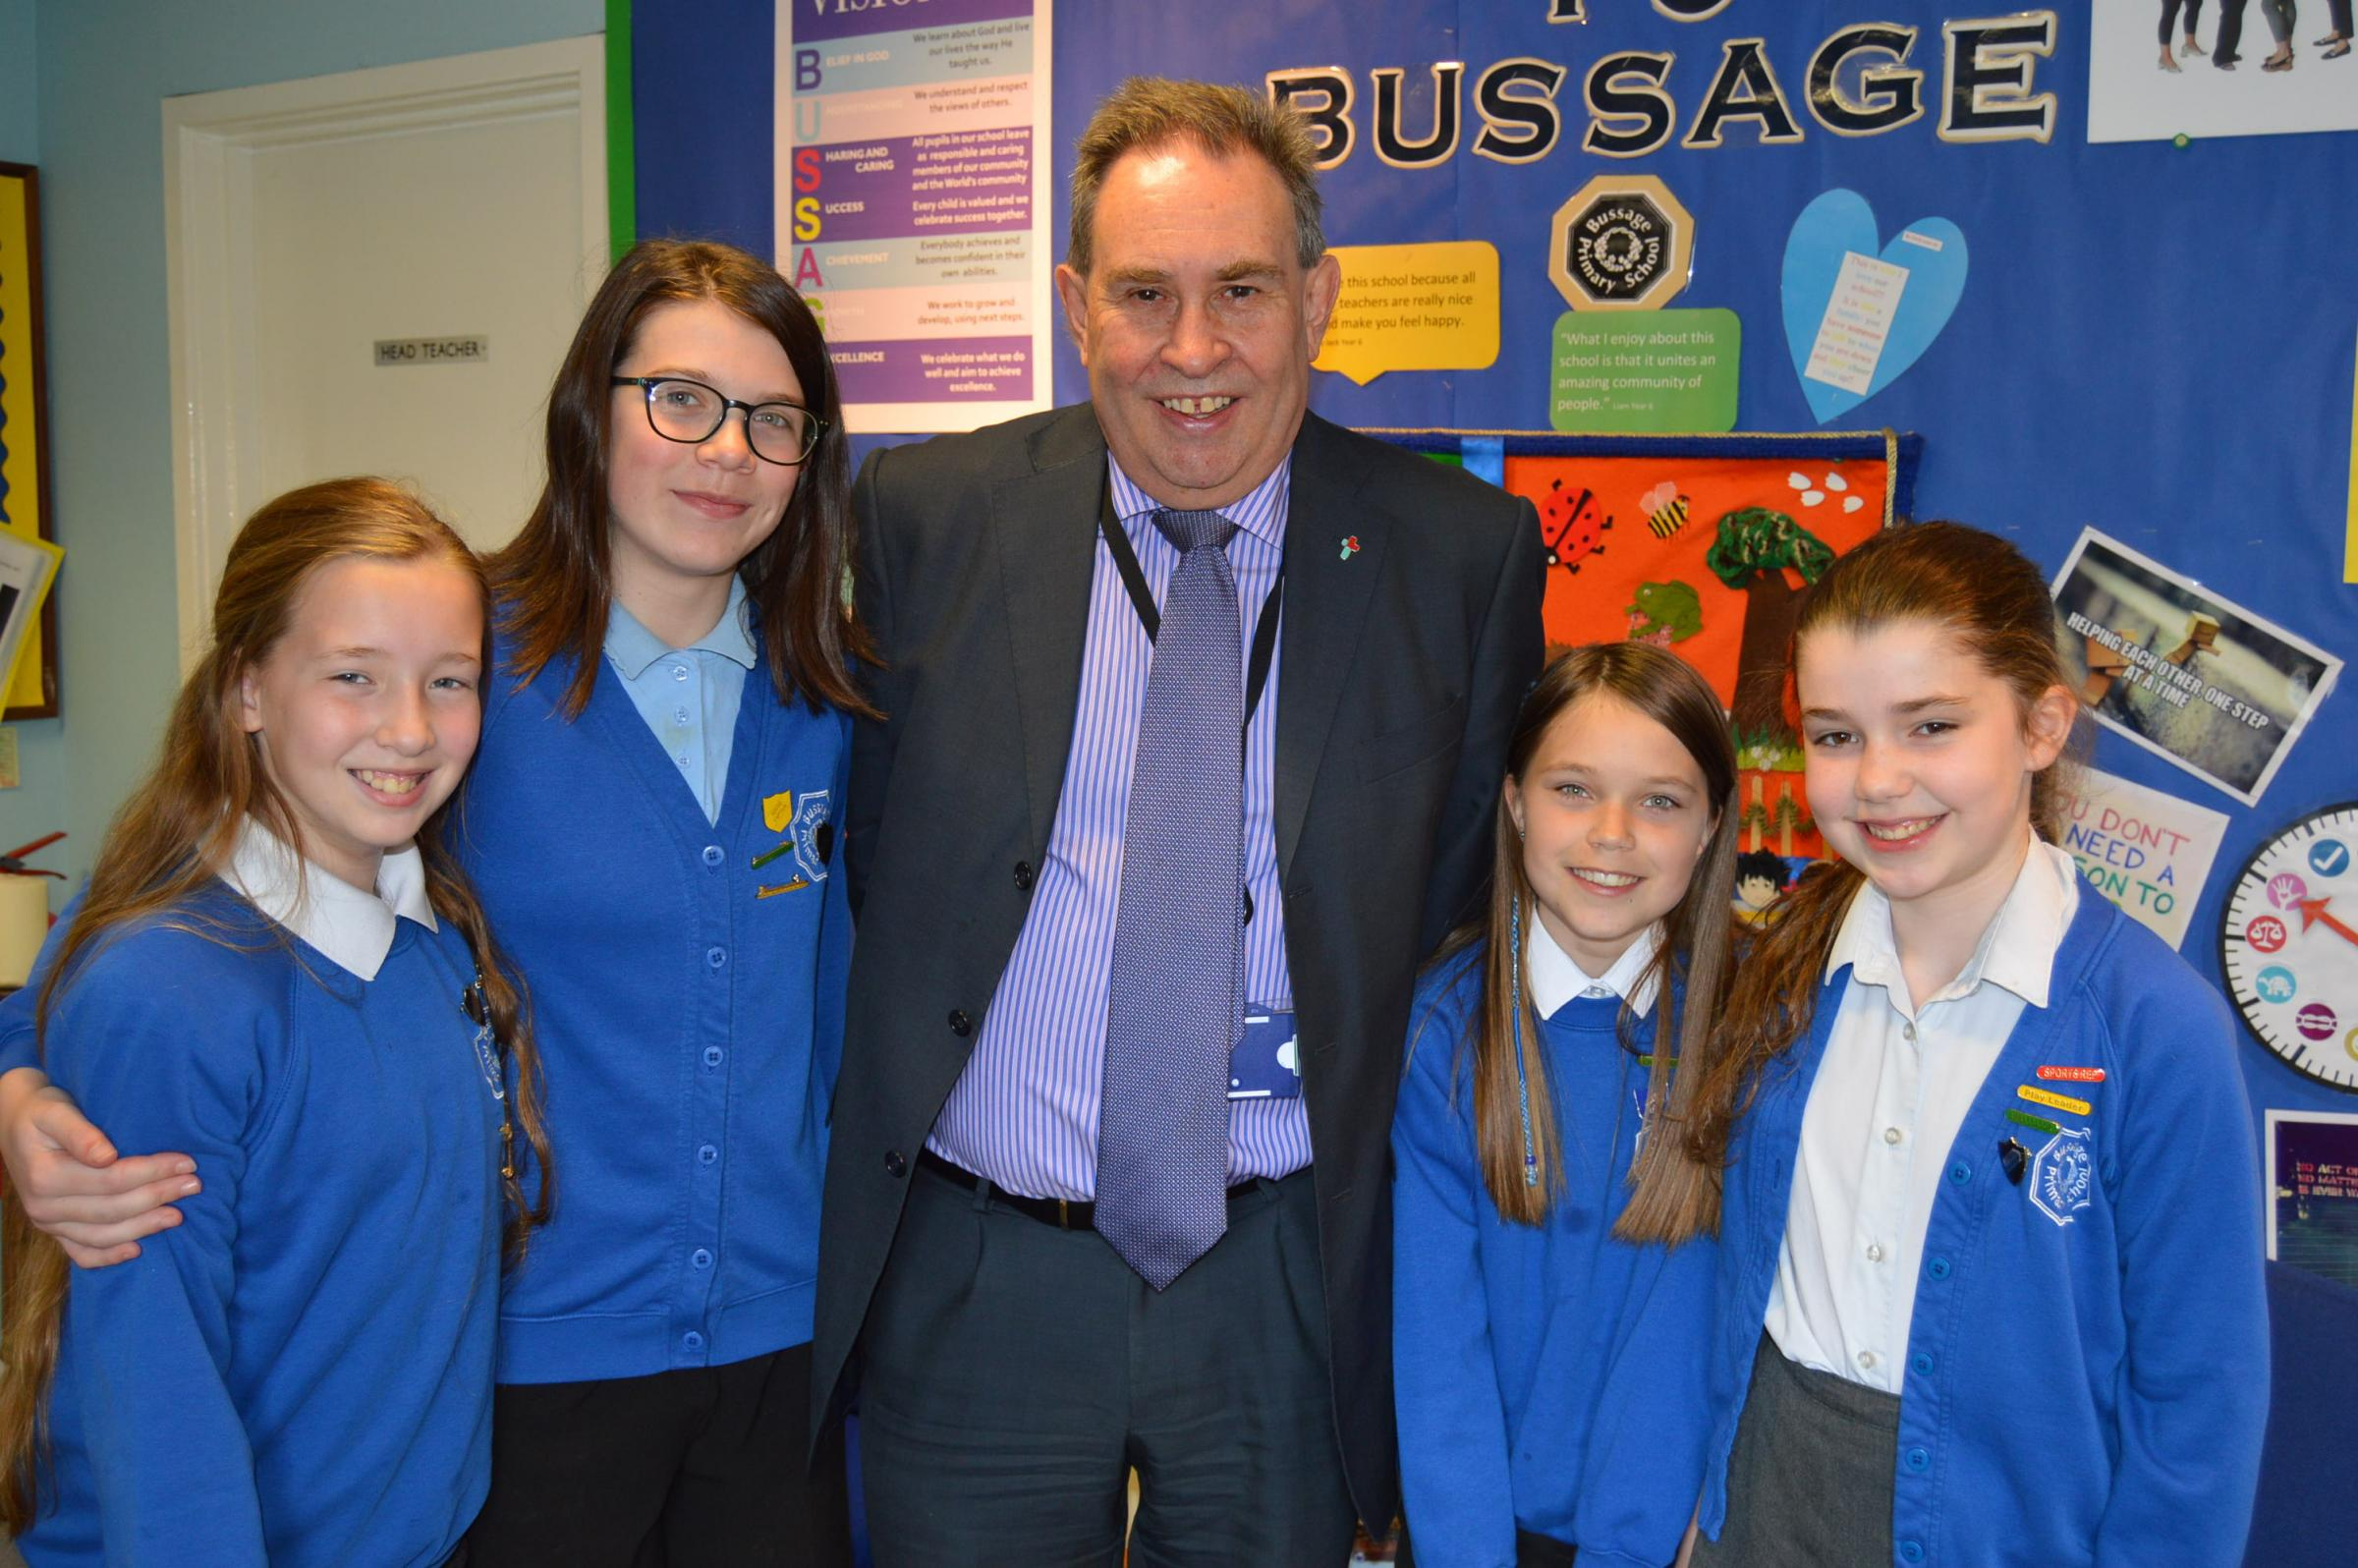 David Drew MP on a recent trip to Bussage Primary School, where he met pupils running a mock Parliament complete with Prime Minister and spoke with the head